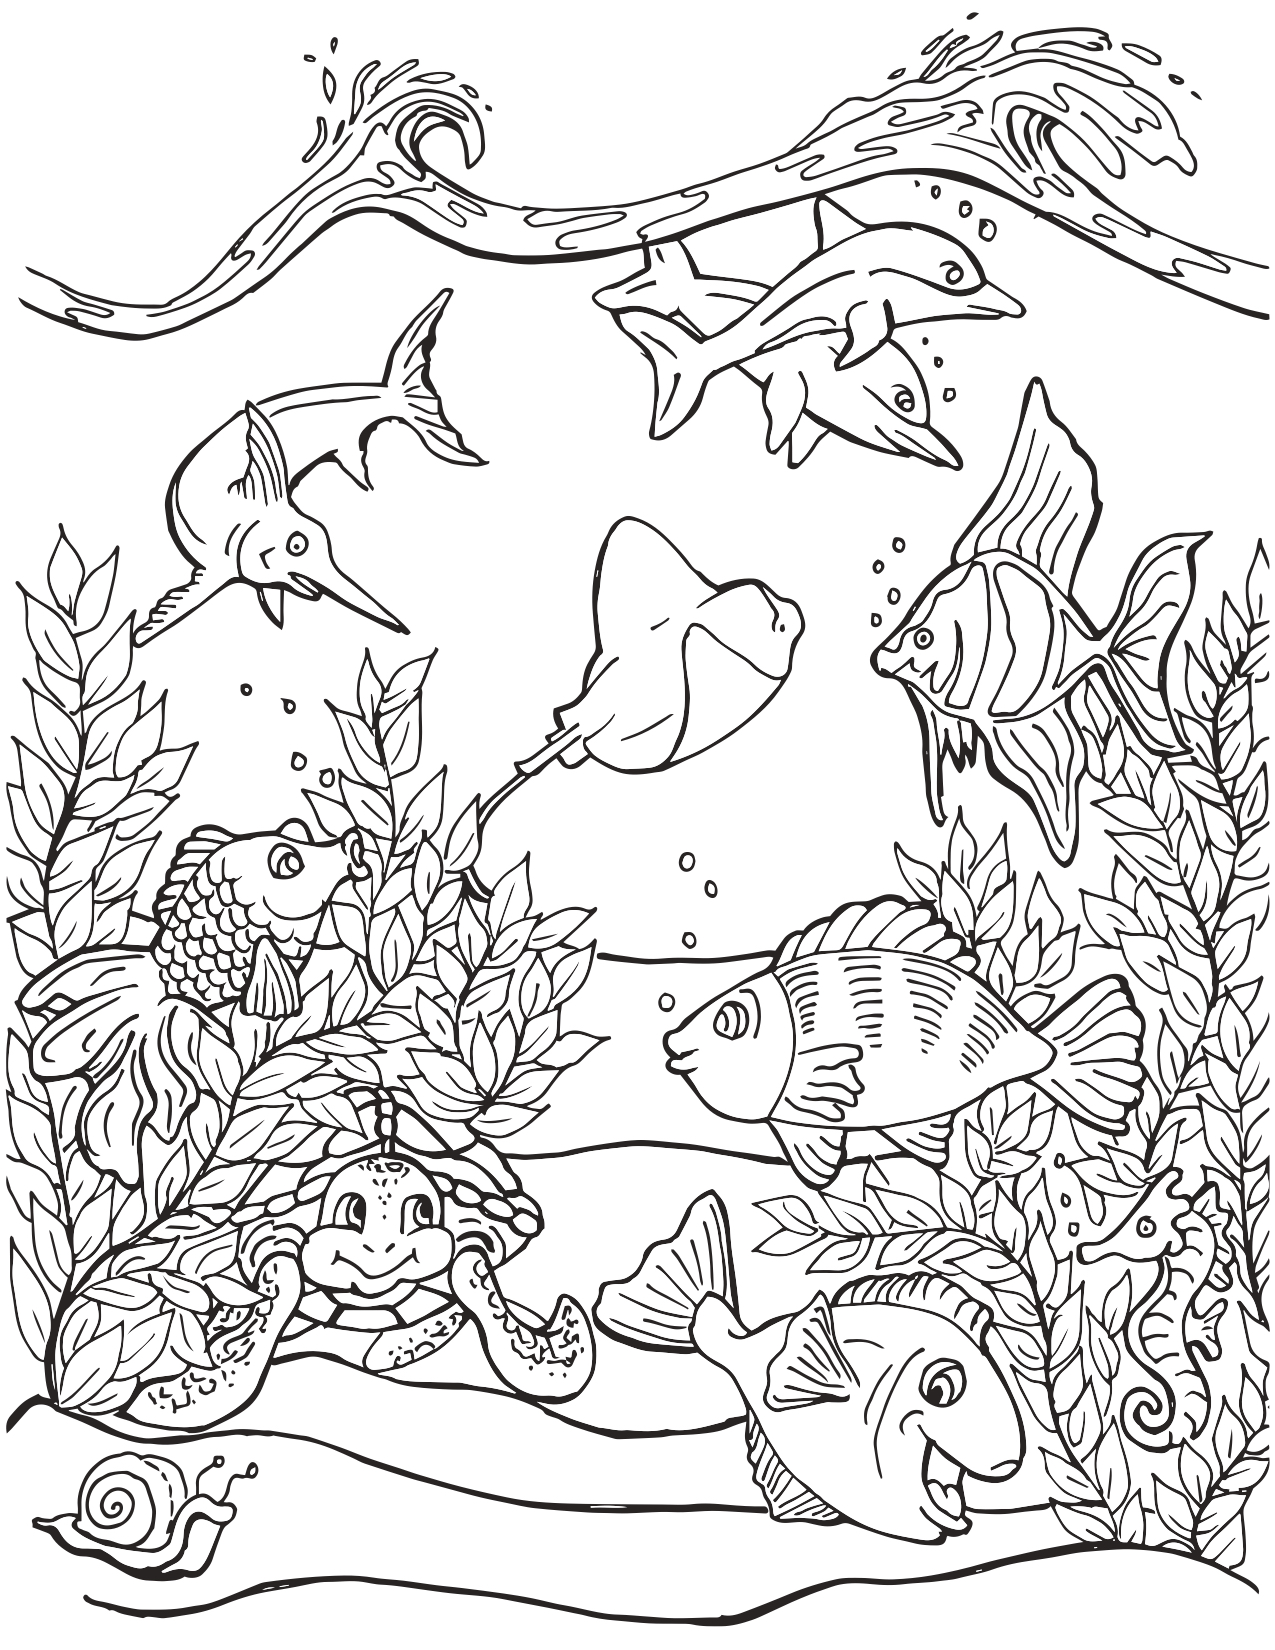 Under The Sea Coloring Pages : under, coloring, pages, Under, Coloring, Mermaid, Pages